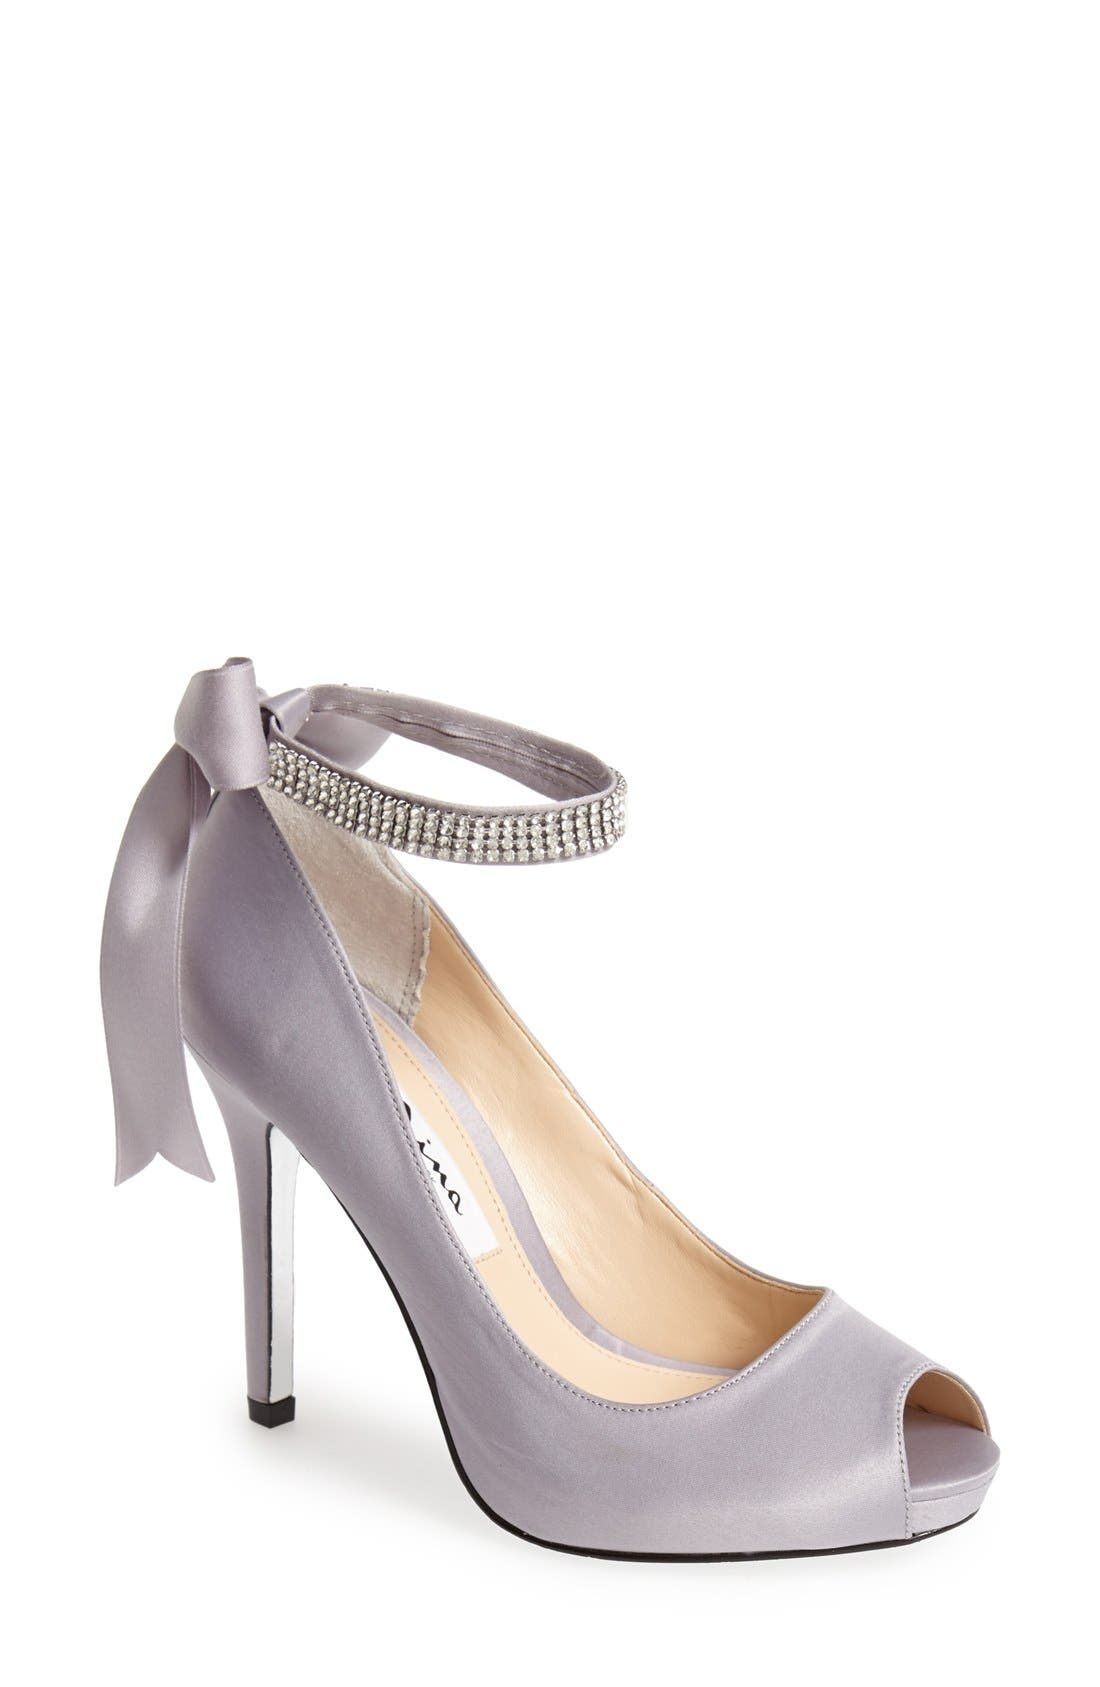 Alternate Image 1 Selected - Nina 'Karen' Platform Pump (Women)